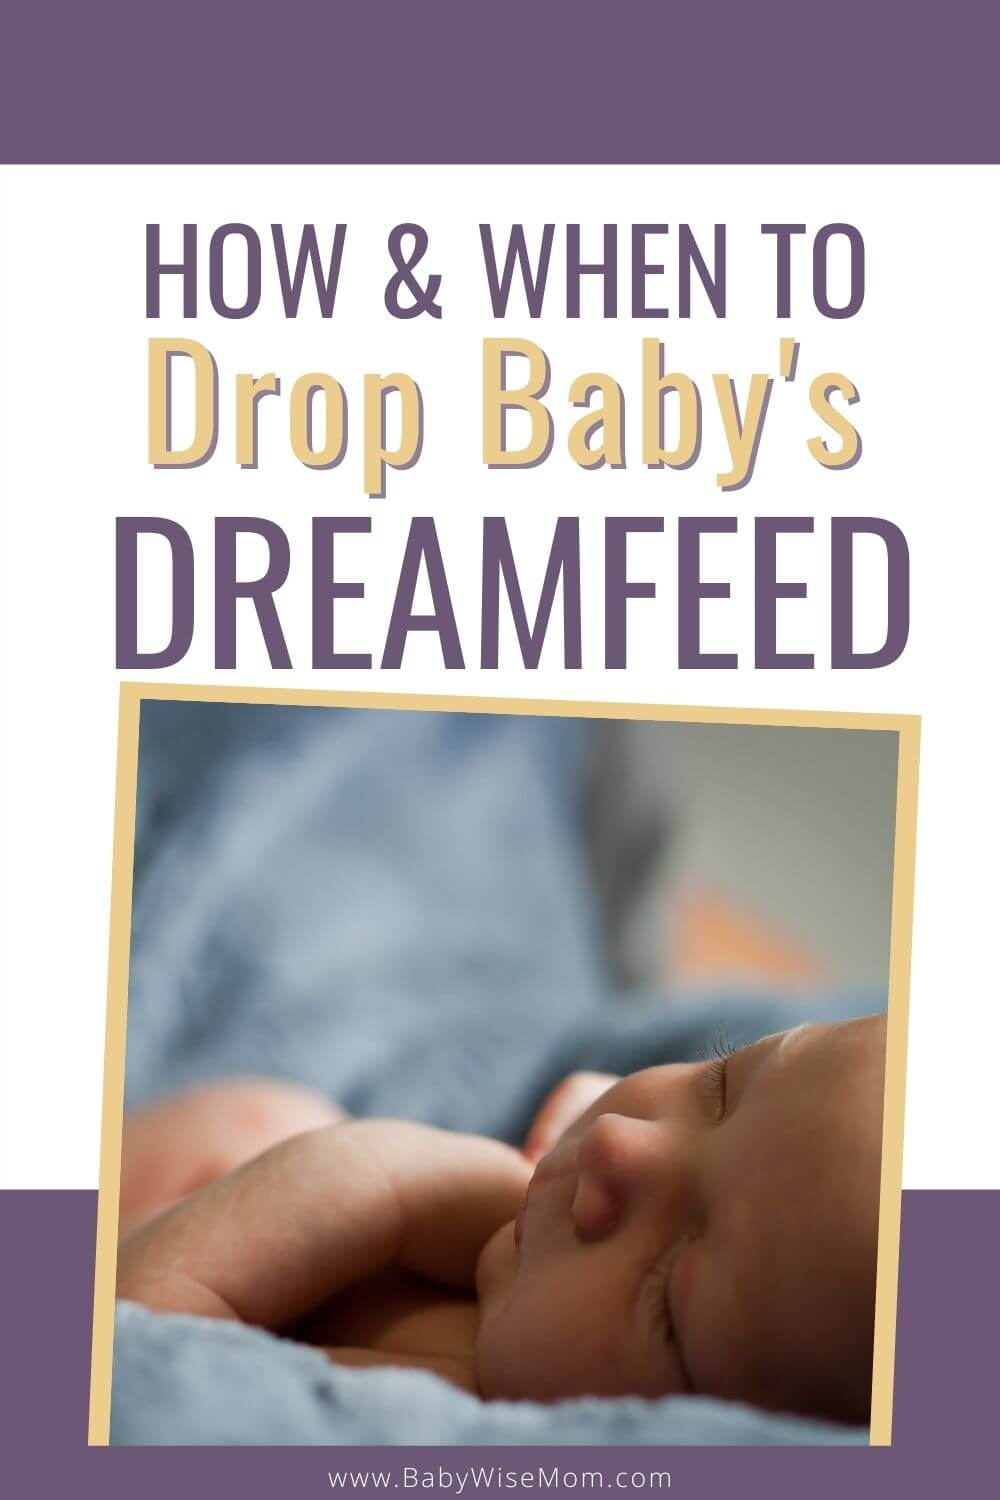 How and when to drop baby's dreamfeed